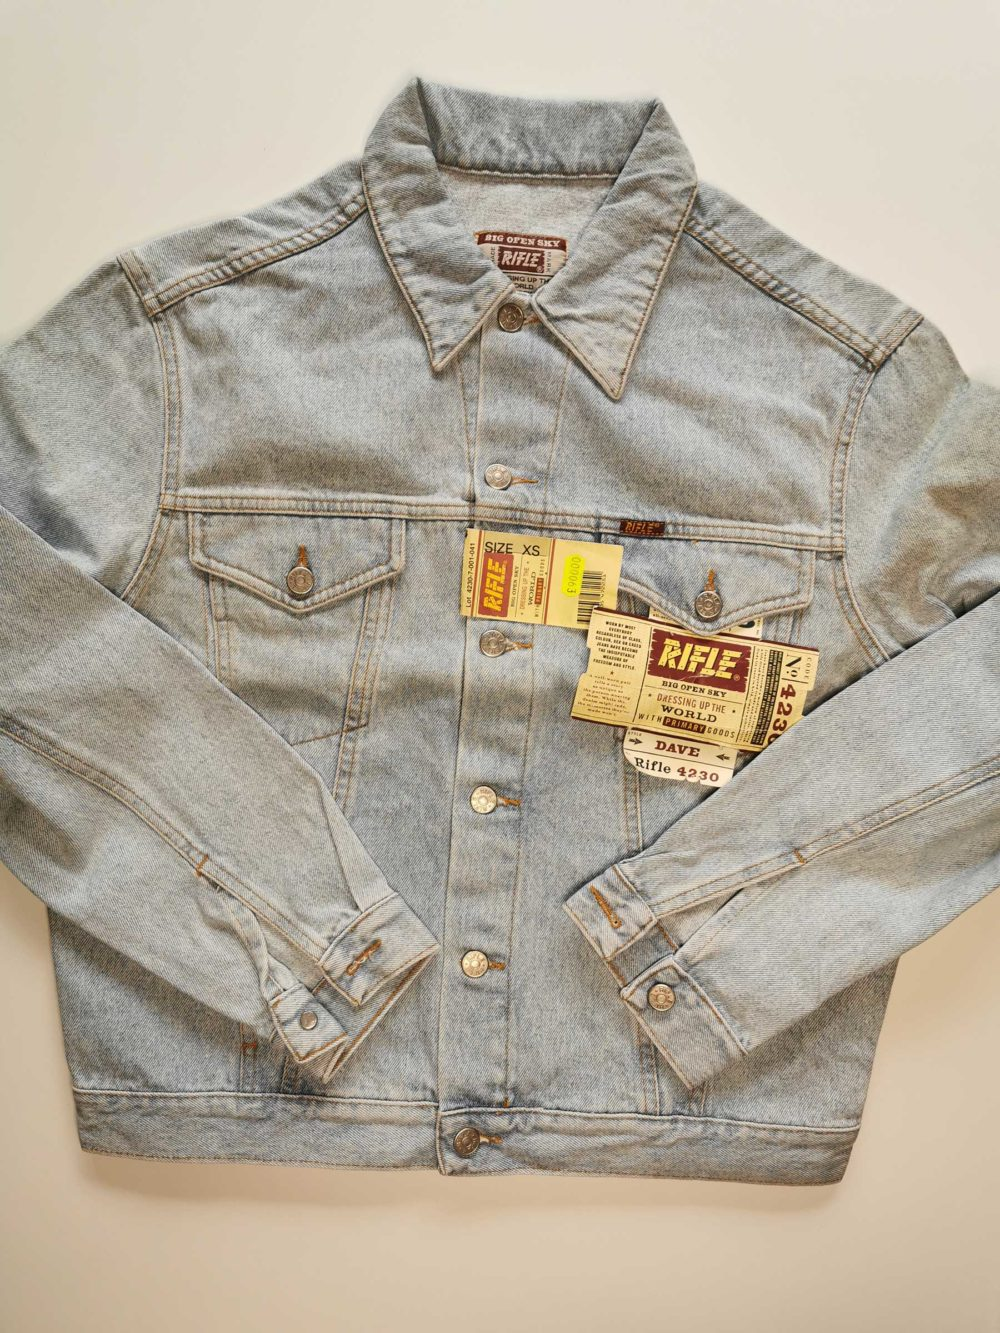 giacca jeans vintage rifle originale anni 90